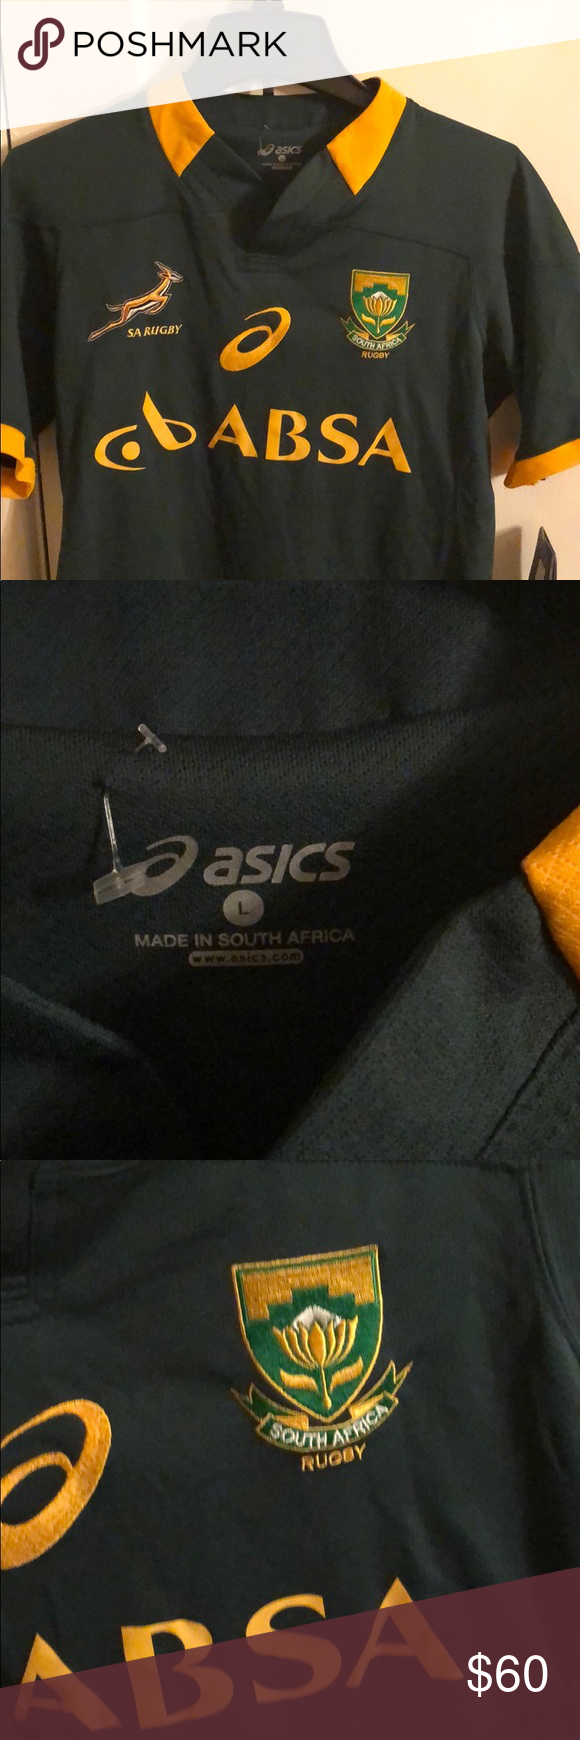 Asics South Africa National Rugby Jersey Size L Nwt With Images Rugby Jersey Asics South African Flag